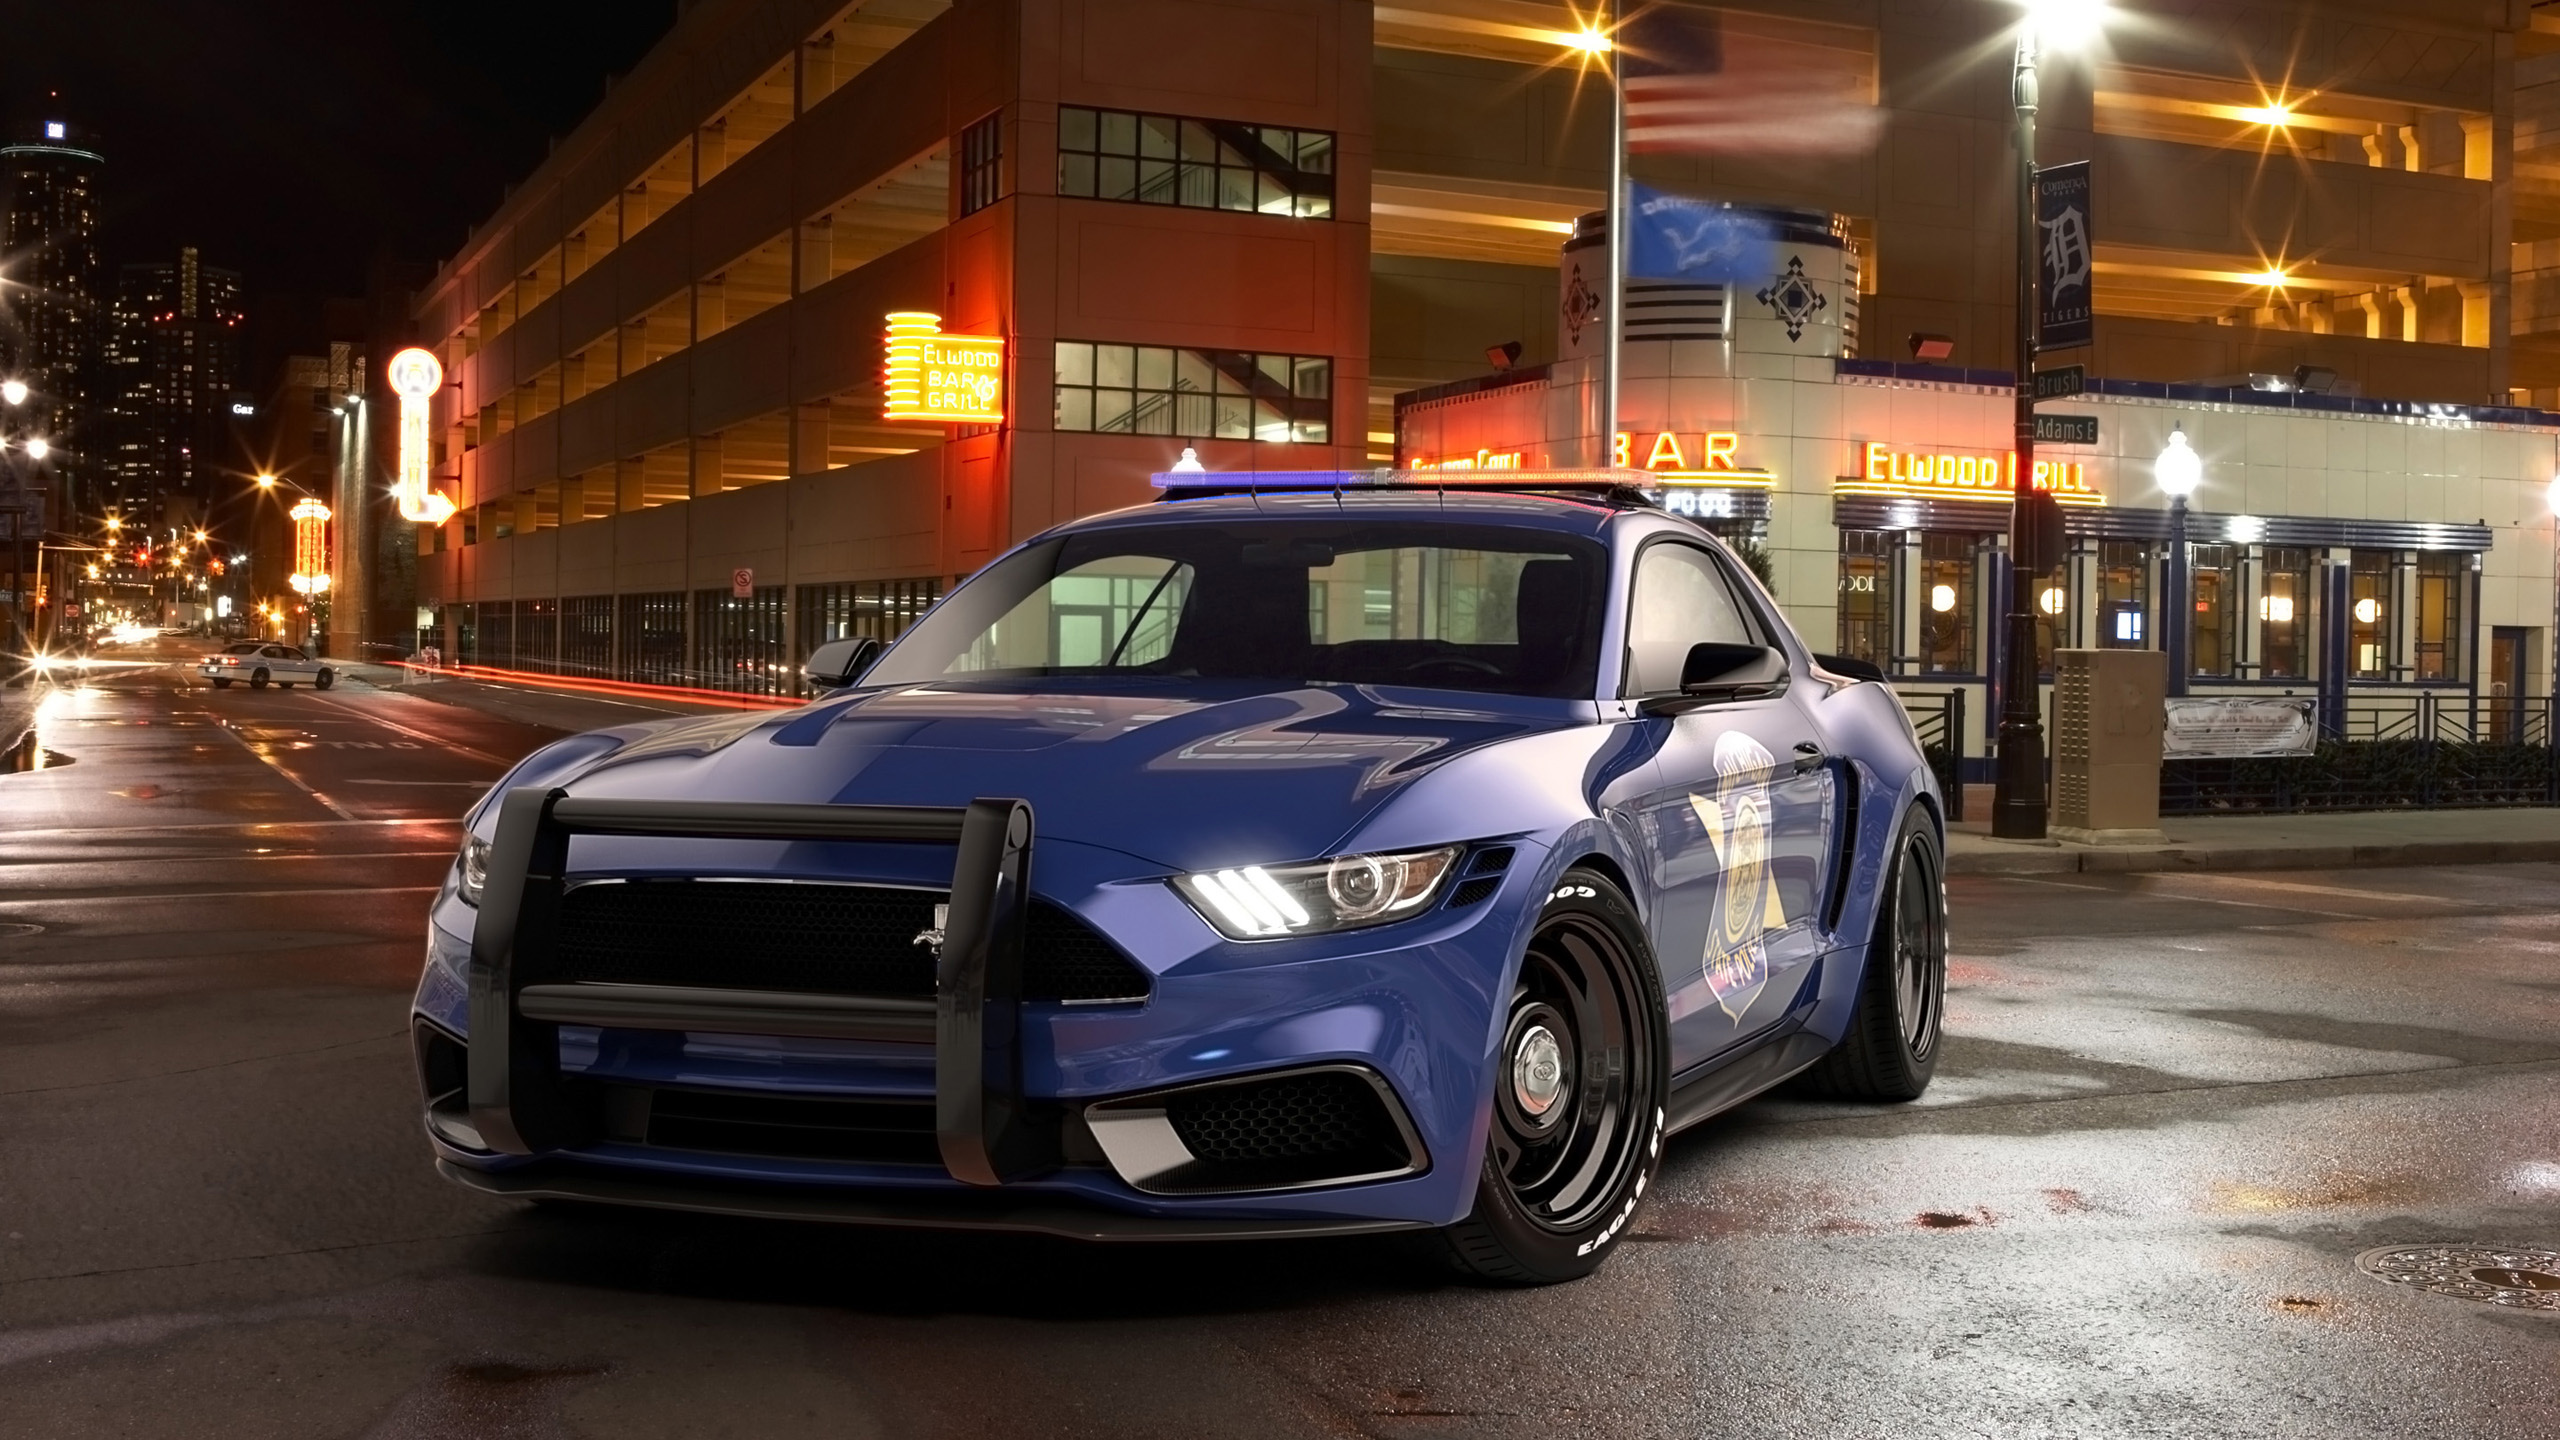 2017 Ford Mustang NotchBack Design Police Wallpaper